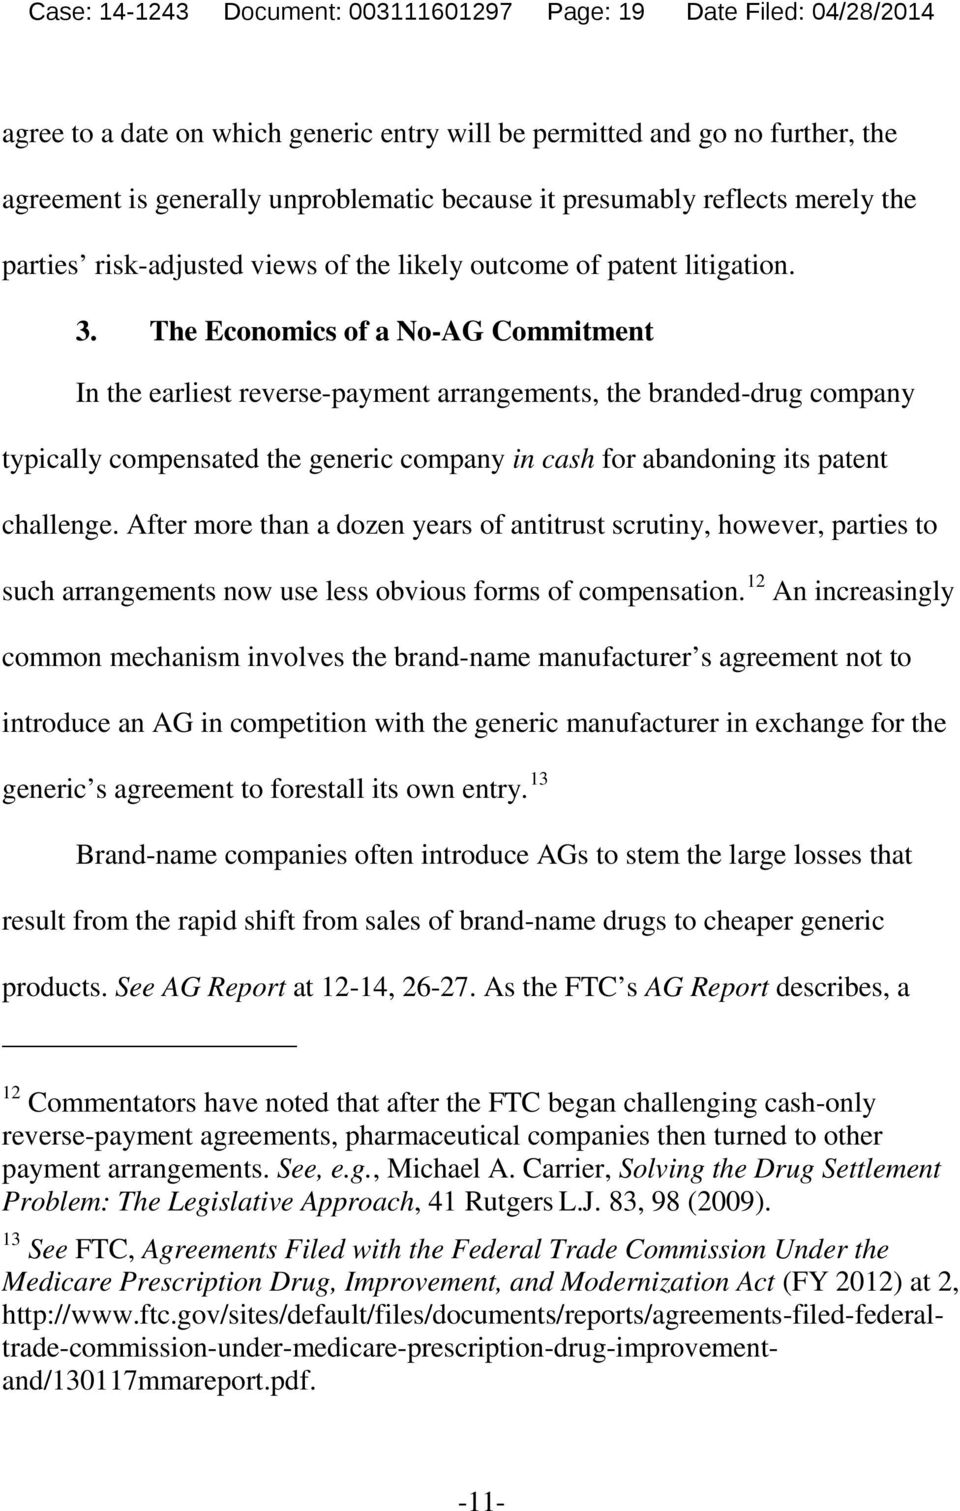 The Economics of a No-AG Commitment In the earliest reverse-payment arrangements, the branded-drug company typically compensated the generic company in cash for abandoning its patent challenge.